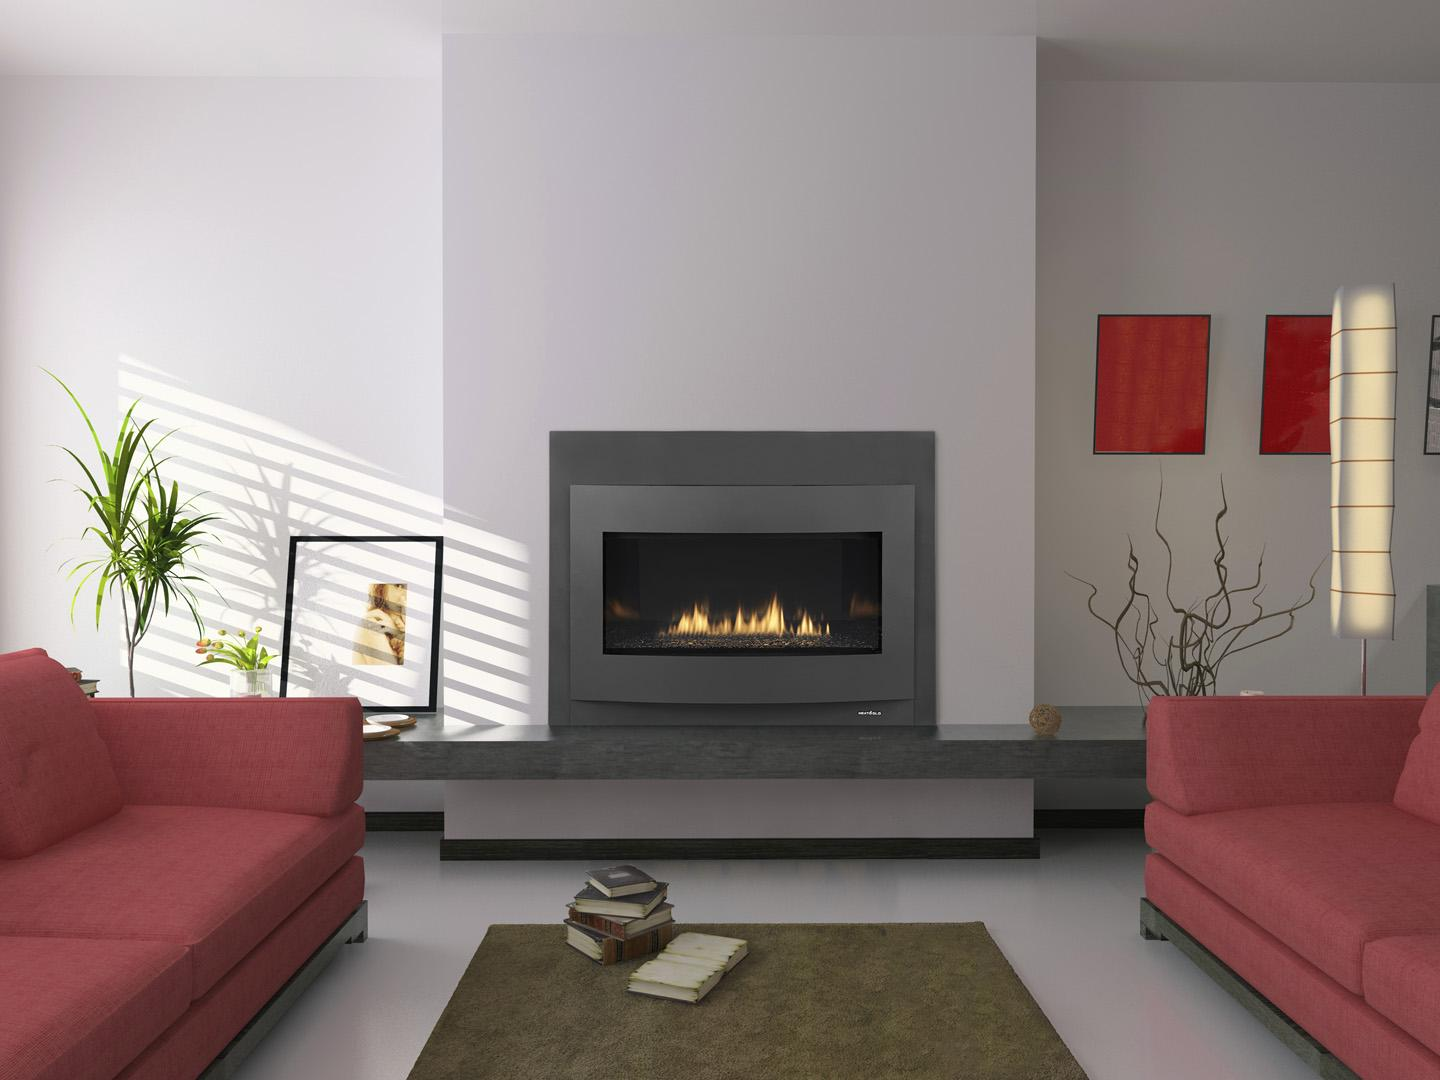 Design 4 Fireplace New Design For Your Style 2